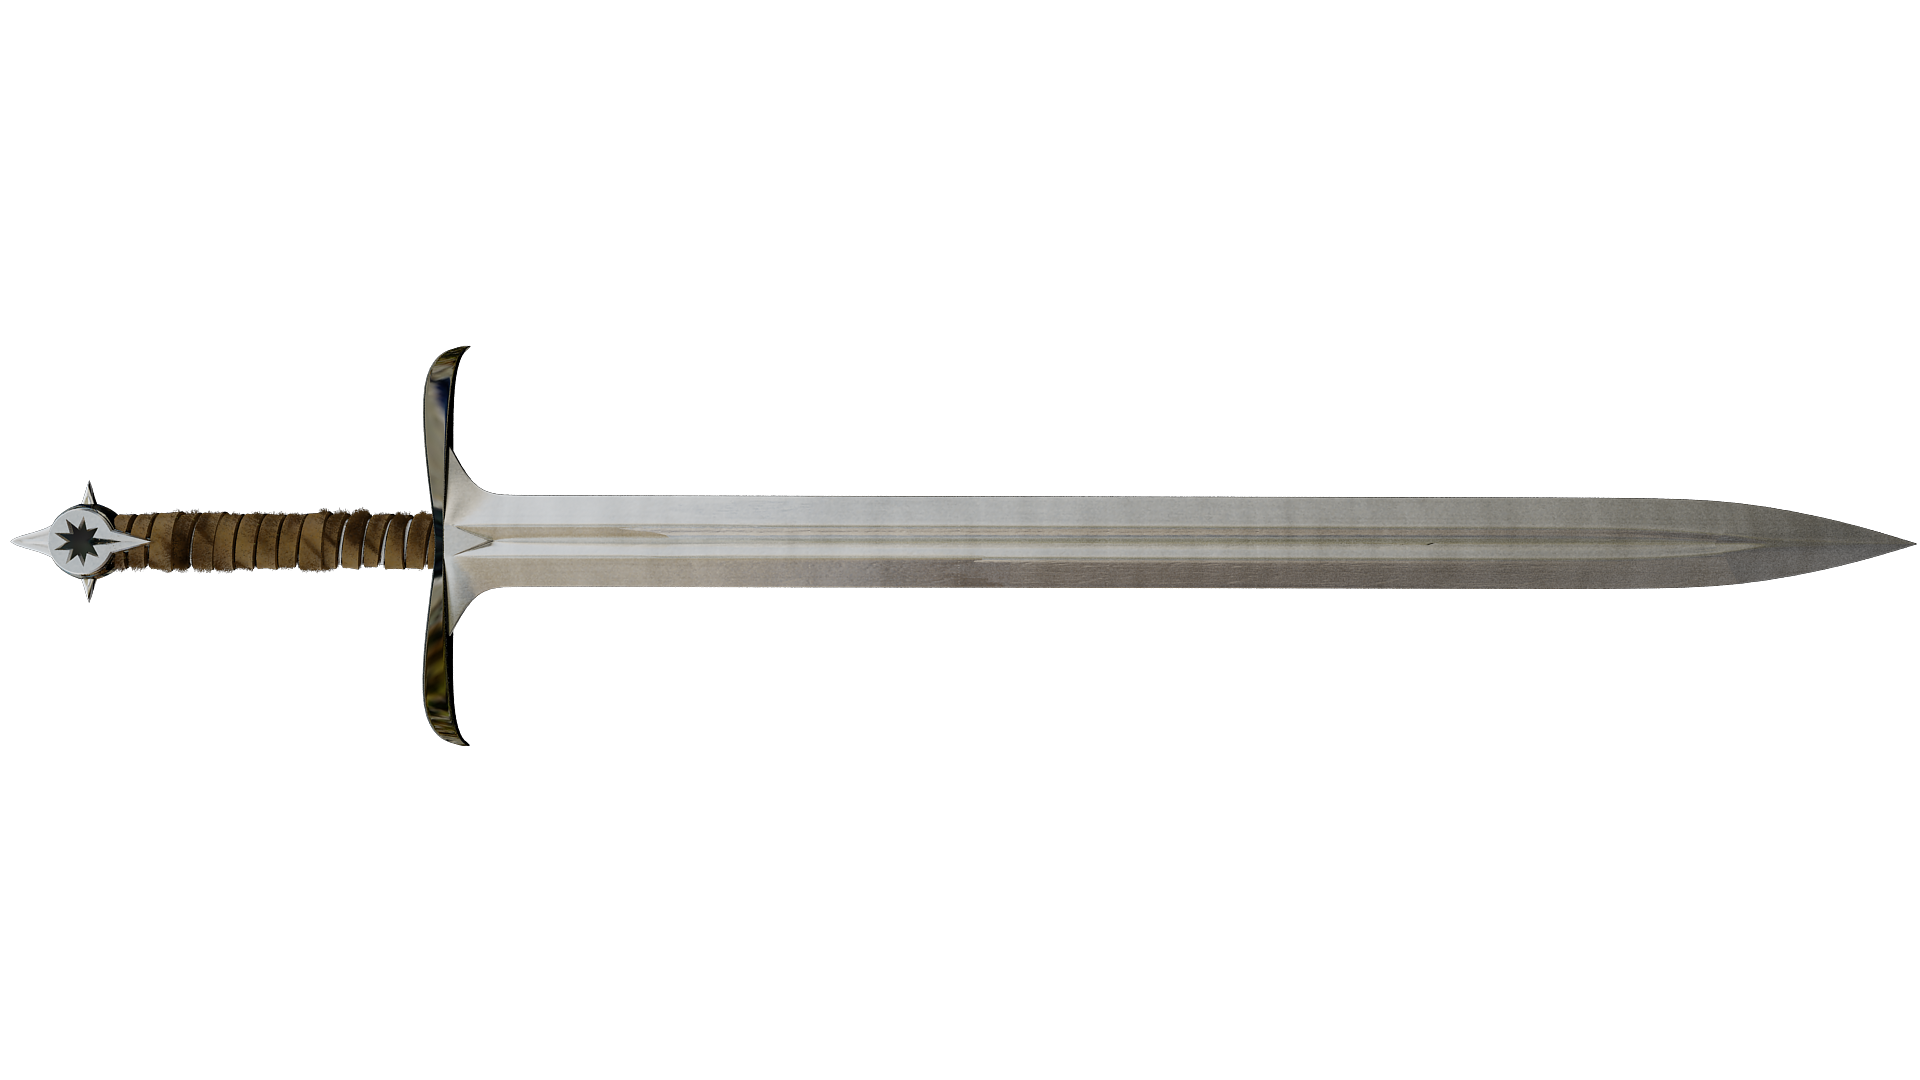 L'échoppe à Top-site - Page 5 Sword-hd-png-sword-png-image-1920